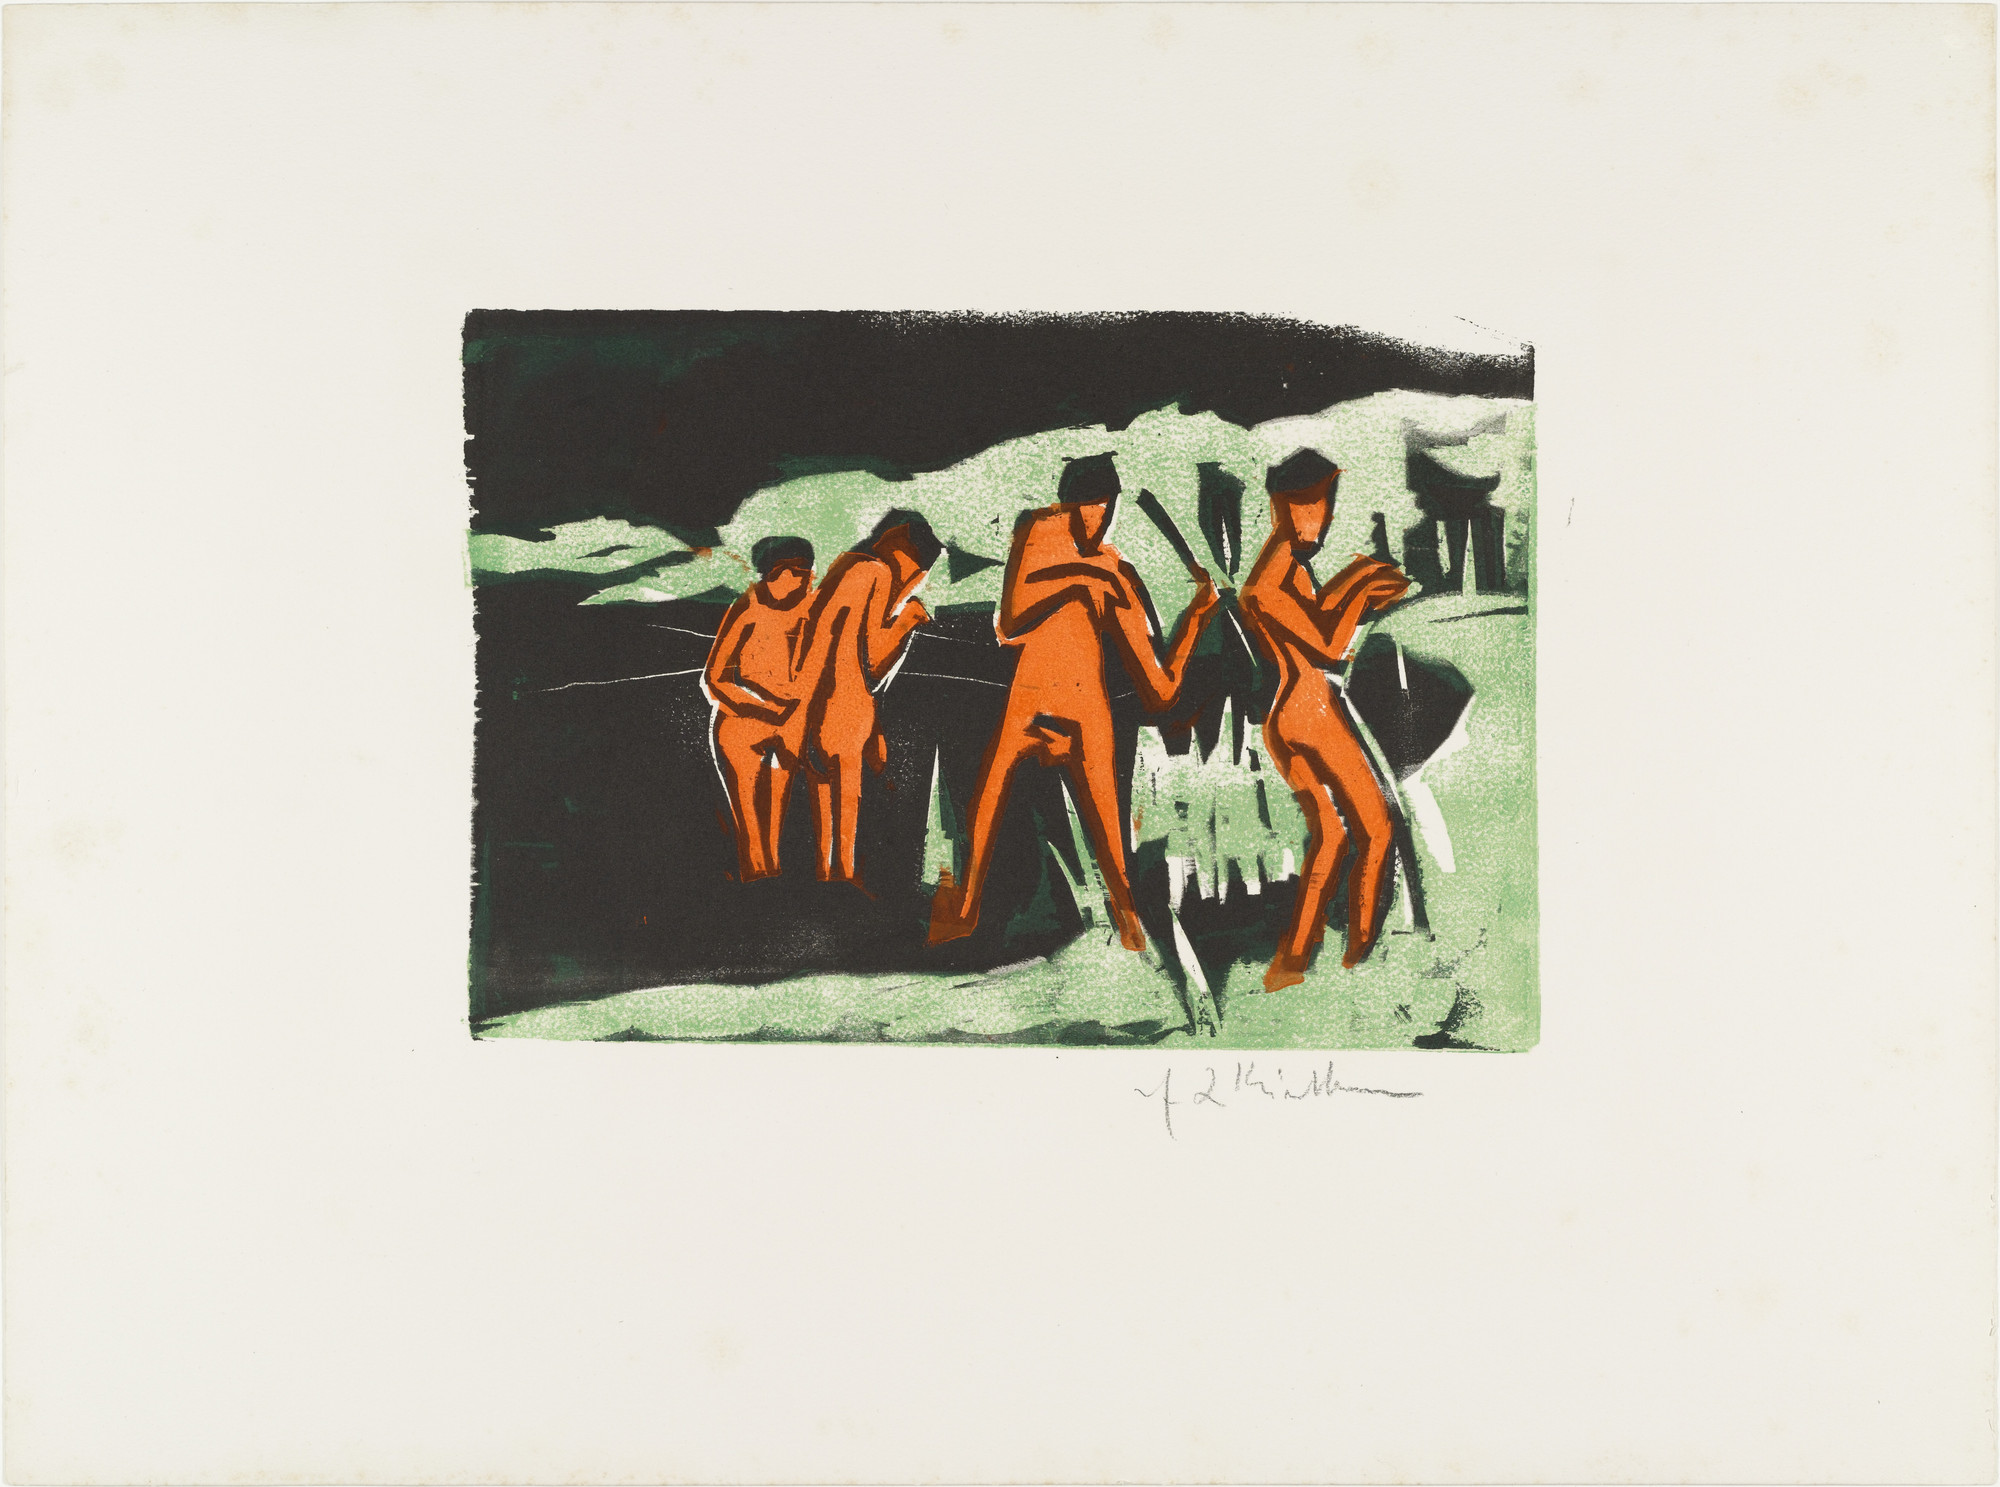 Ernst Ludwig Kirchner. Bathers Throwing Reeds (Mit Schilf werfende Badende) from Brücke 1910. 1909, published 1910